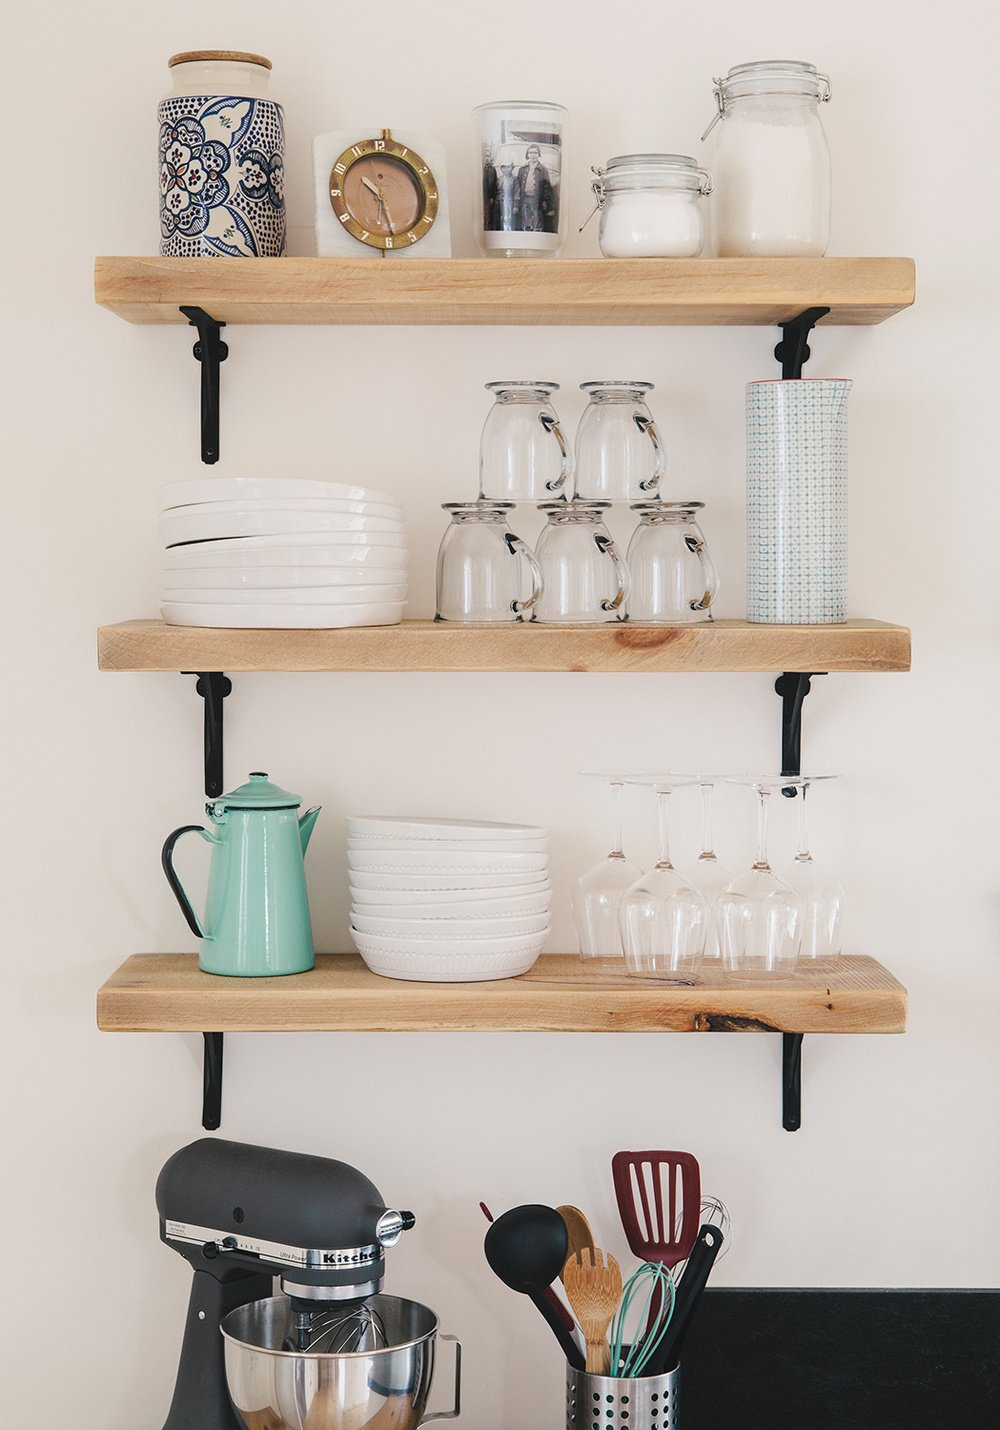 kitchen shelves (image credit: svk interior design) JYPSZFI